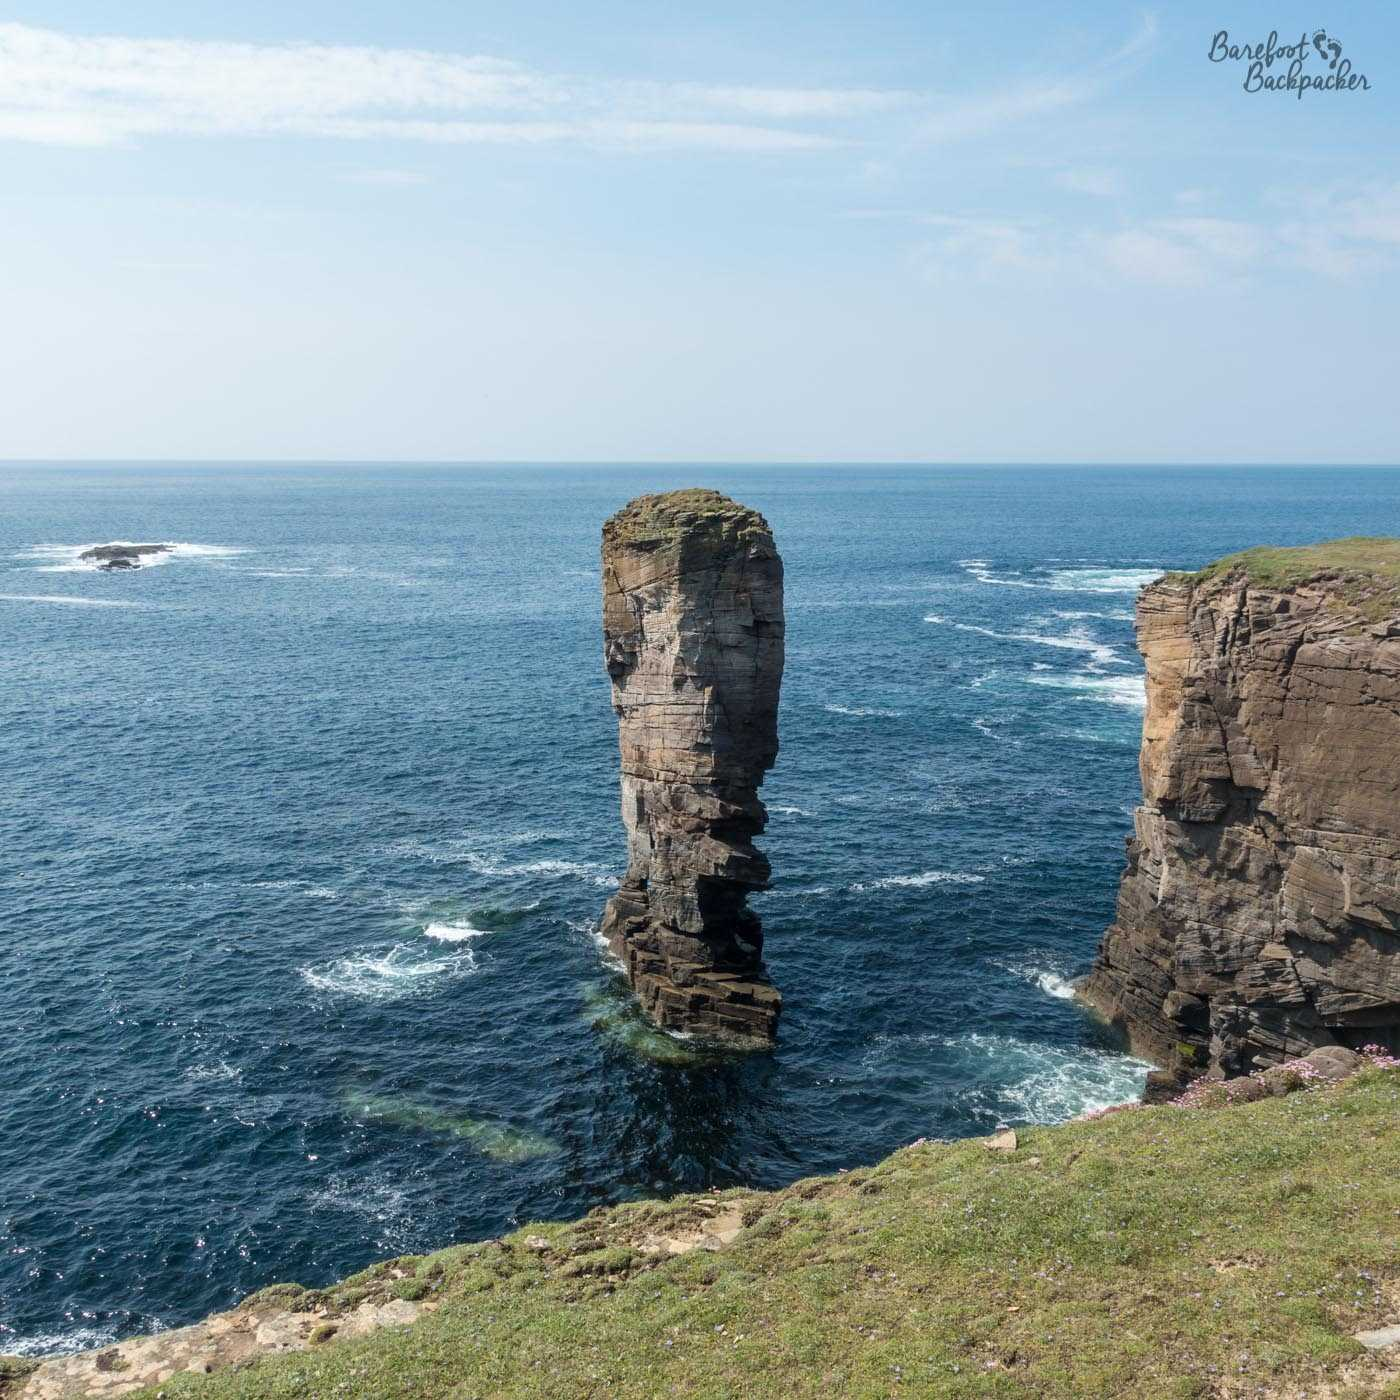 Rising up from a slightly choppy sea, beyond the cliff edge, is a tower of rock. It's bare and thinner at the bottom, wider towards the top, and the very top of it is covered with a layer of moss. From a certain angle, it has the profile of a man's elongated face.